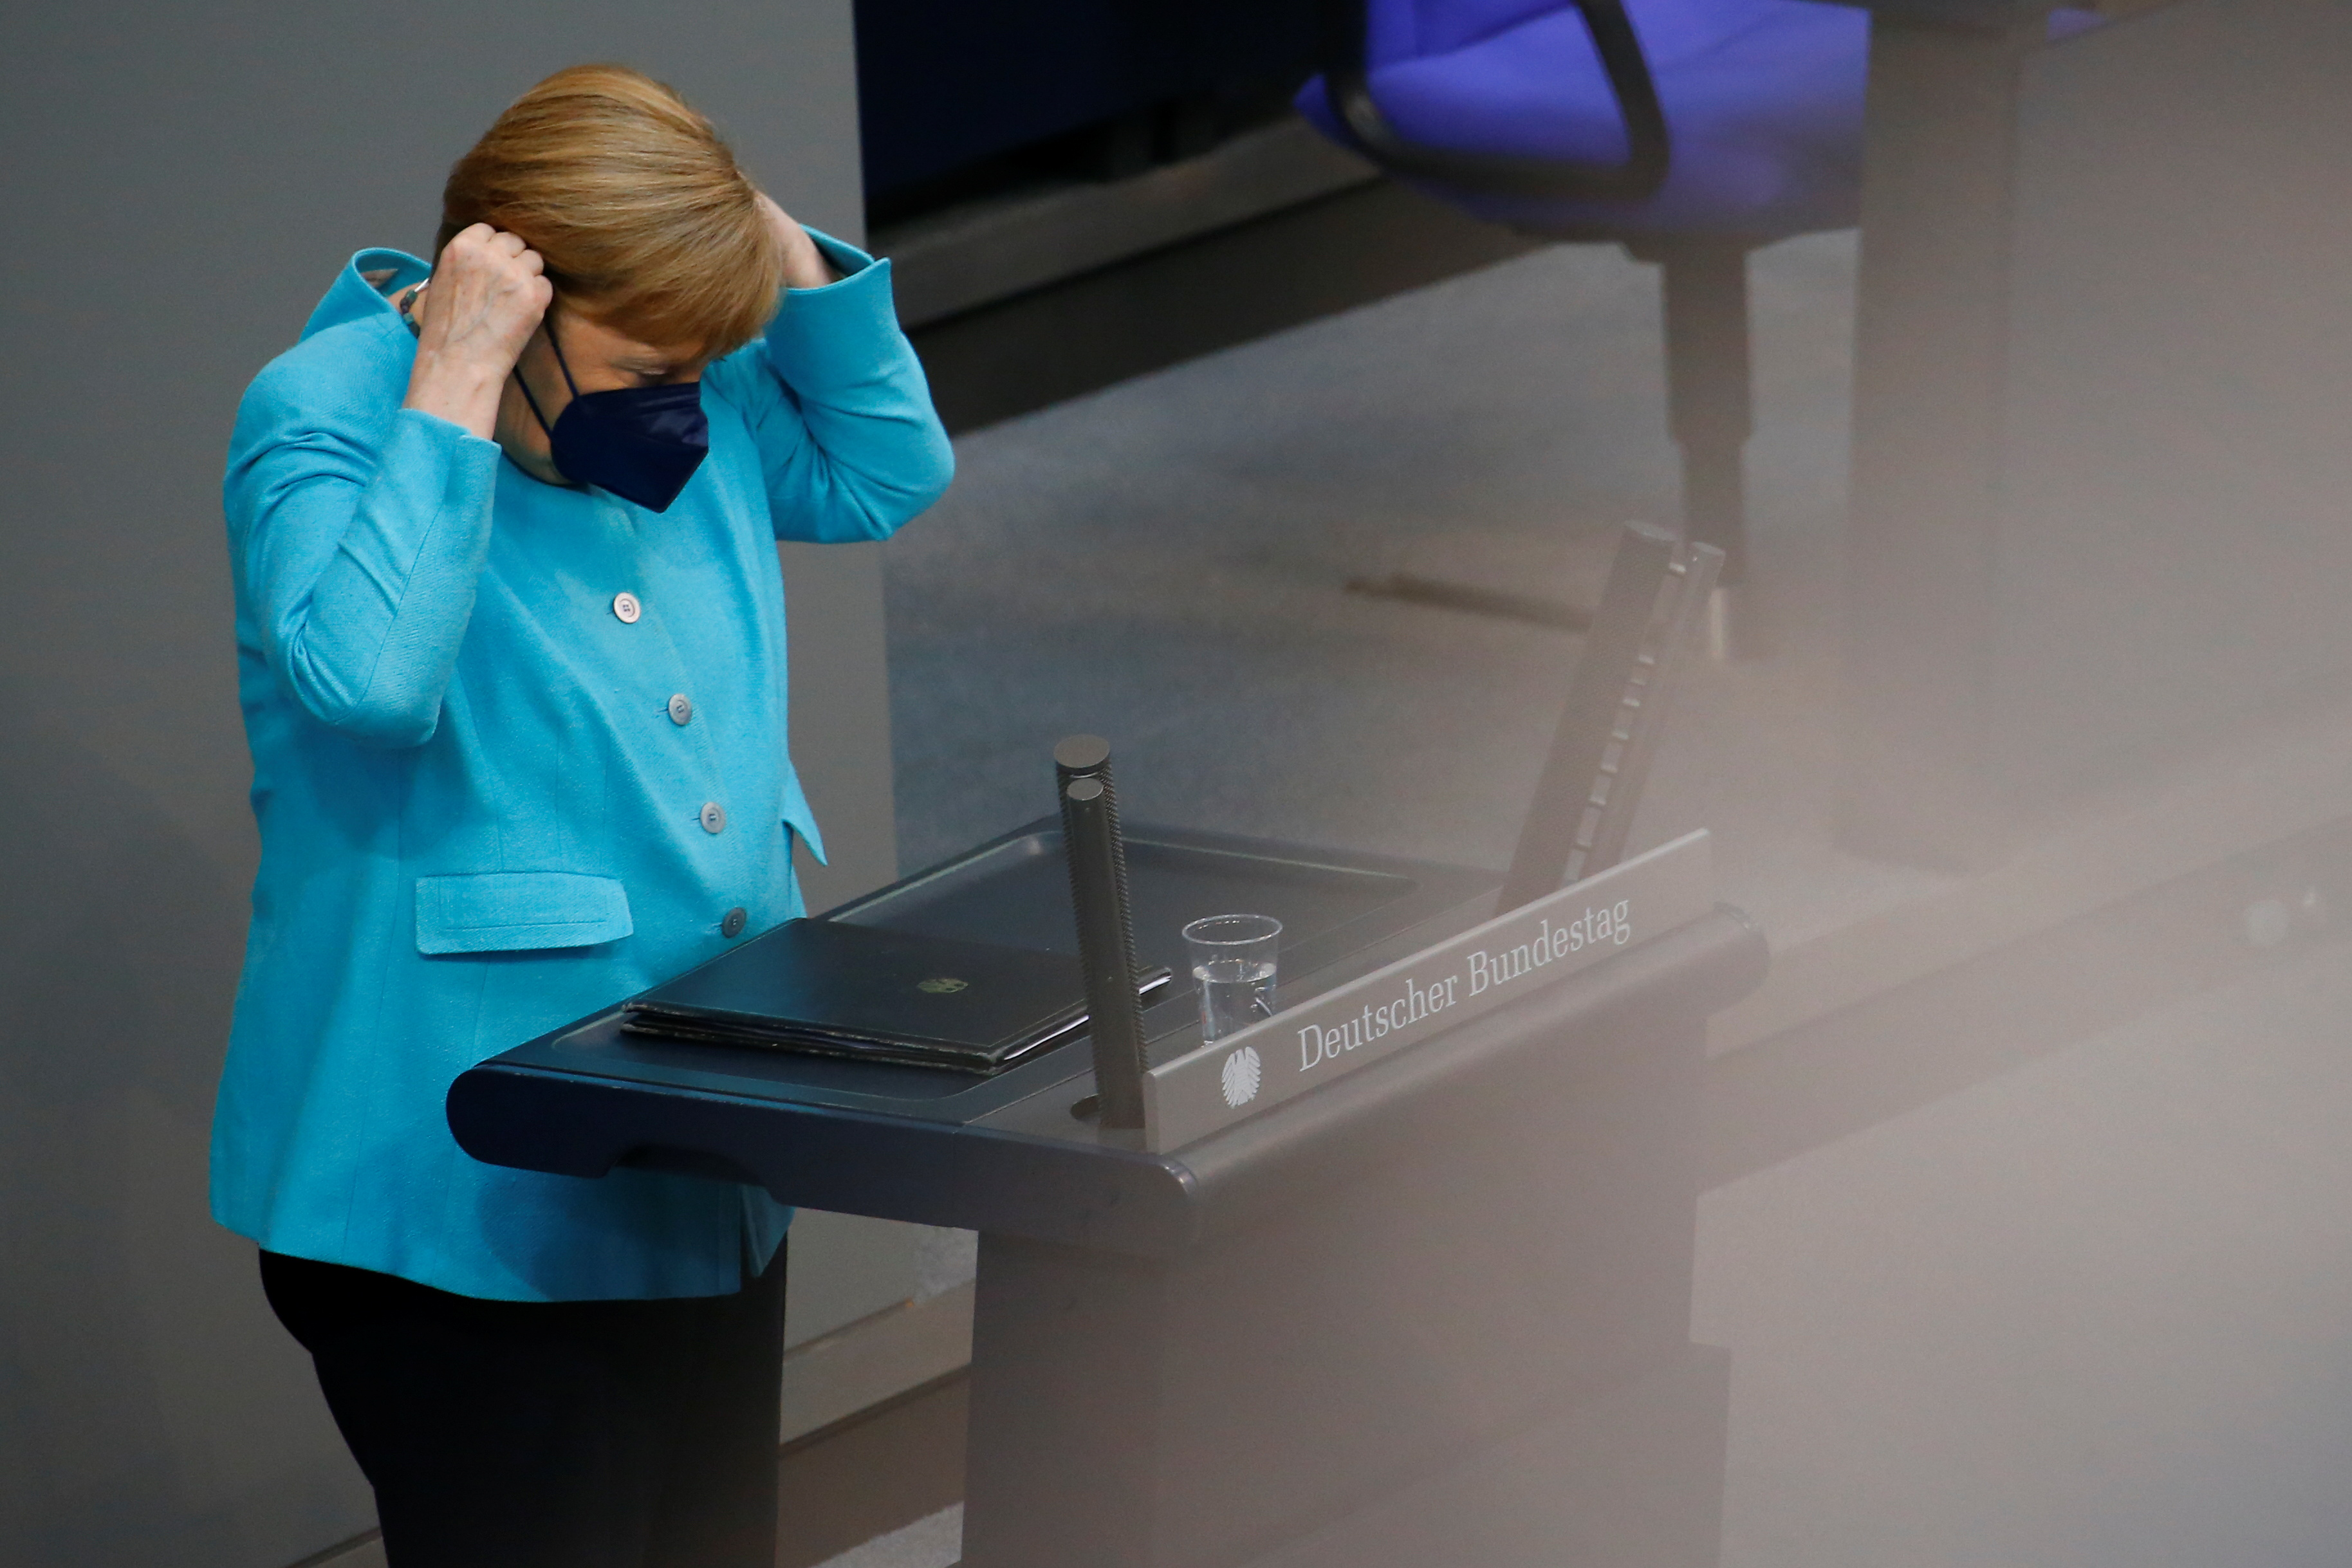 German Chancellor Angela Merkel wears her protective face mask after delivering a government declaration on the upcoming European Council meeting at the lower house of parliament Bundestag in Berlin, Germany, June 24, 2021. REUTERS/Michele Tantussi